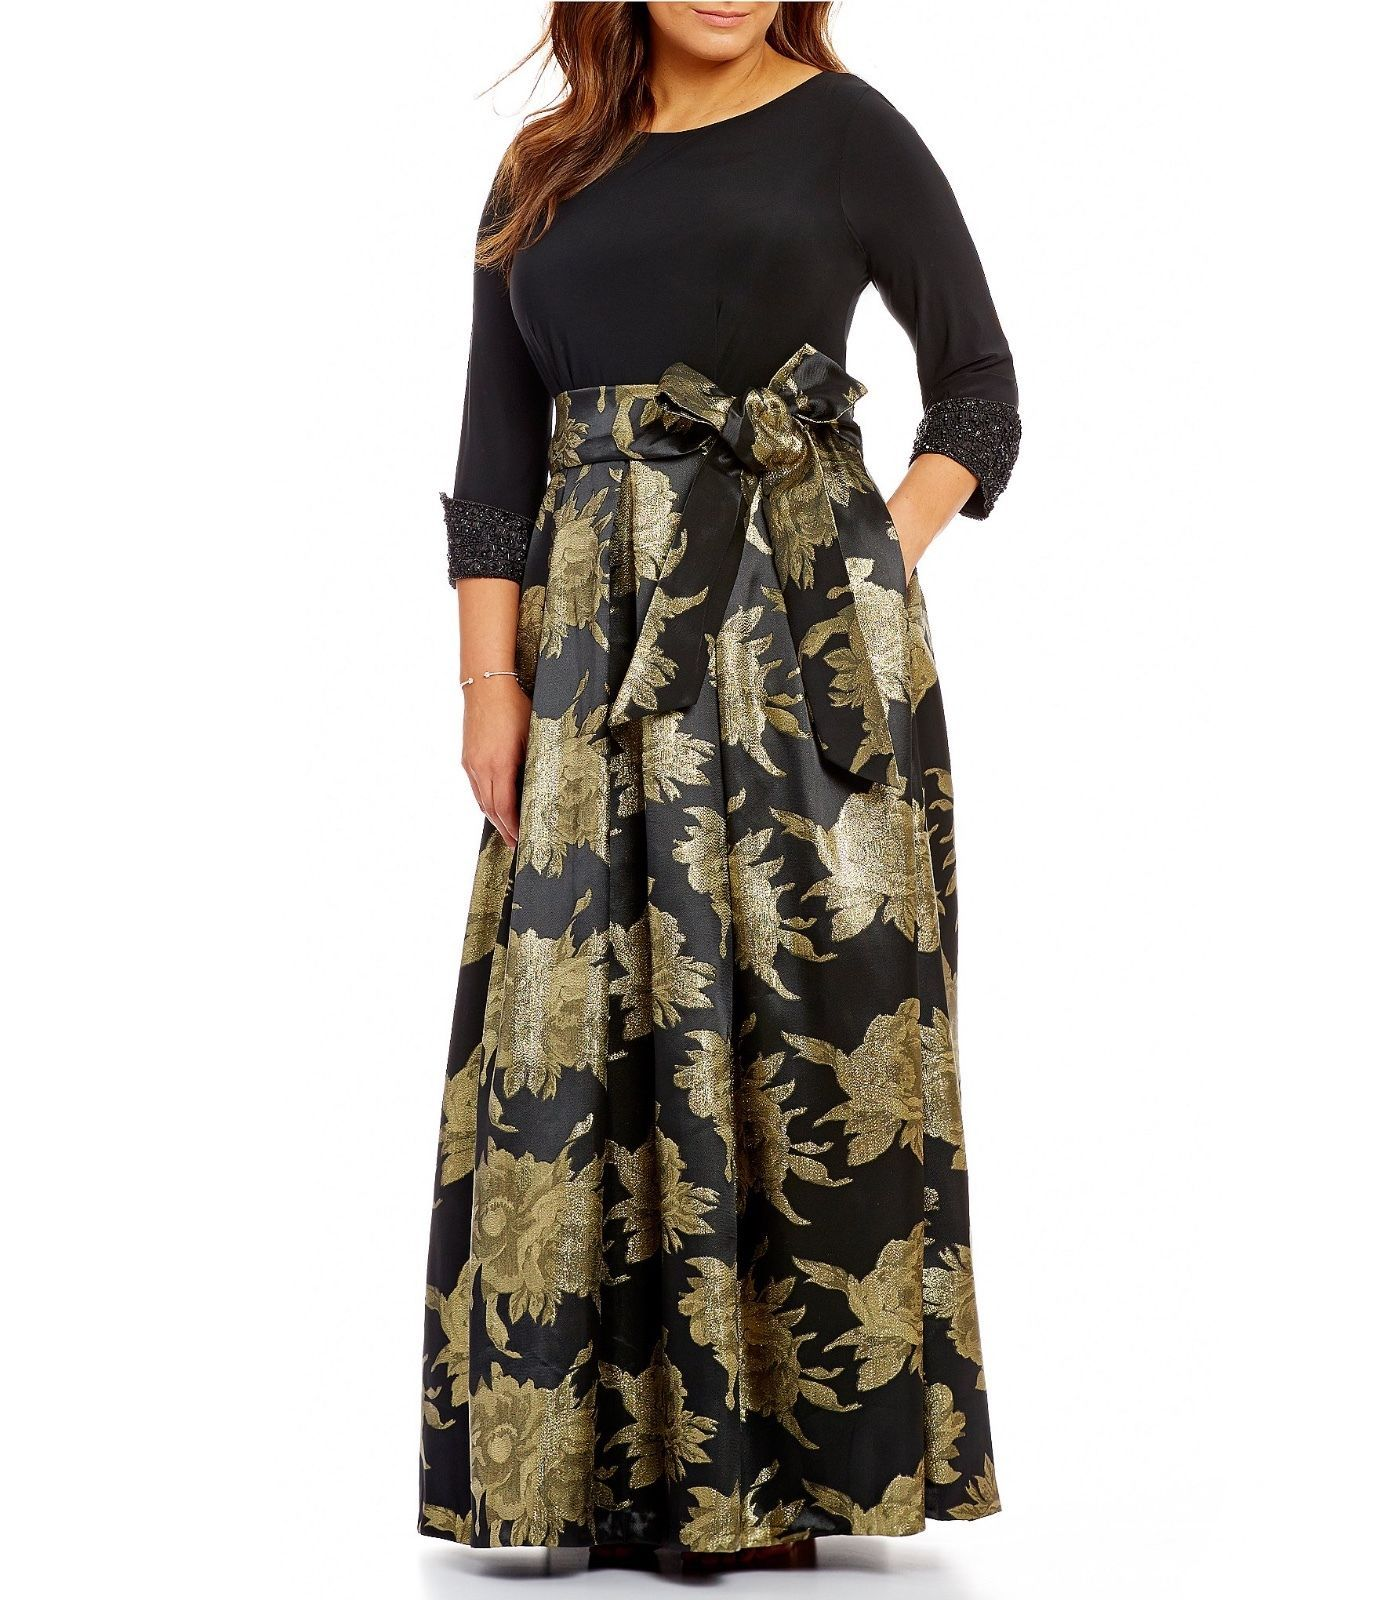 Awesome great eliza j blk gld metallic brocade floral jacquard